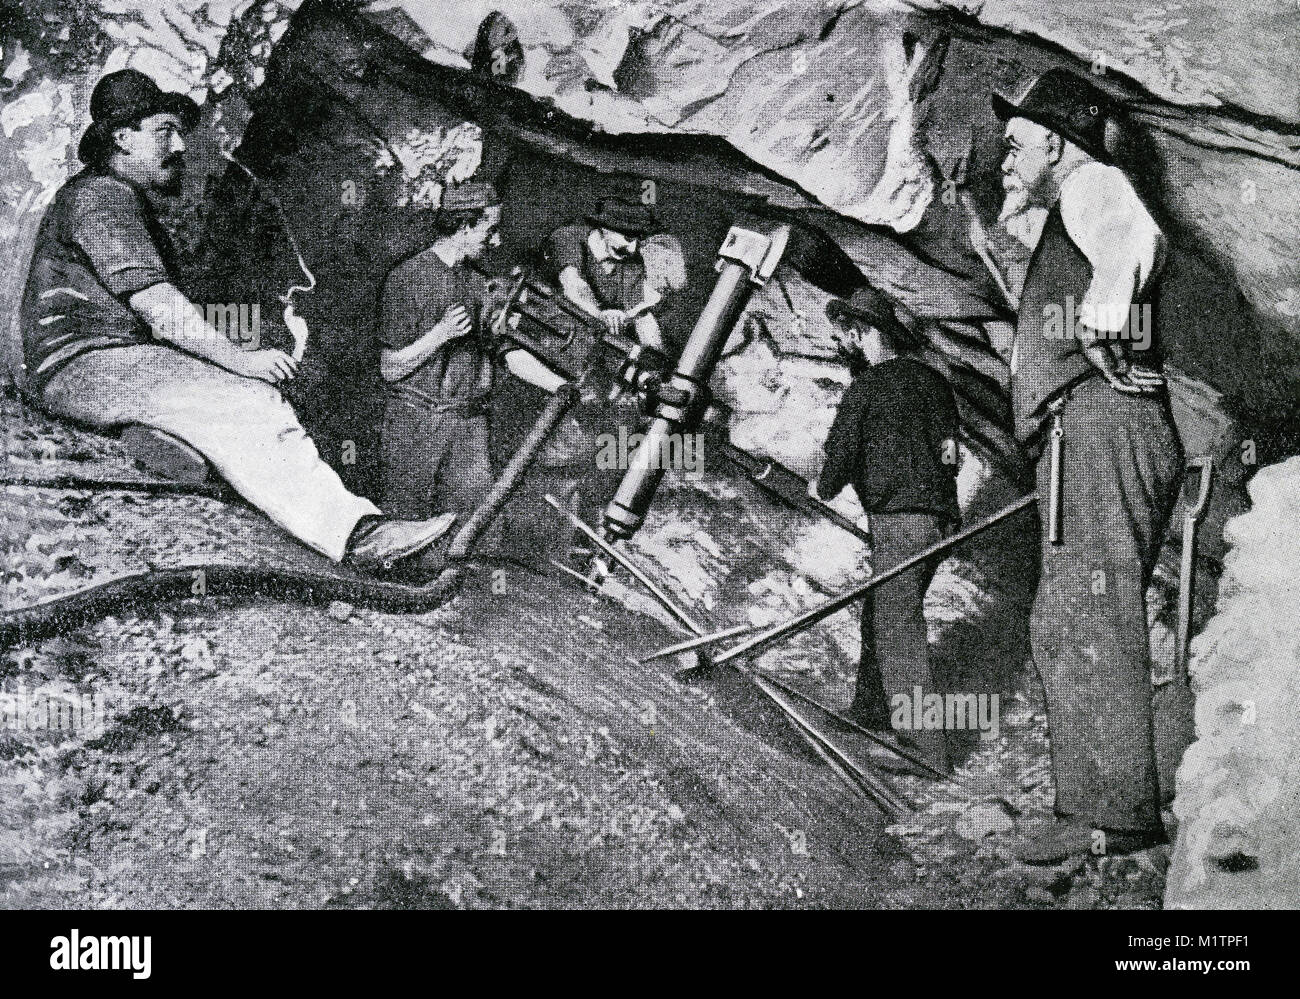 Halftone illustration of gold miners working 4154 feet below the surface in a South African mine, circa 1900. From - Stock Image